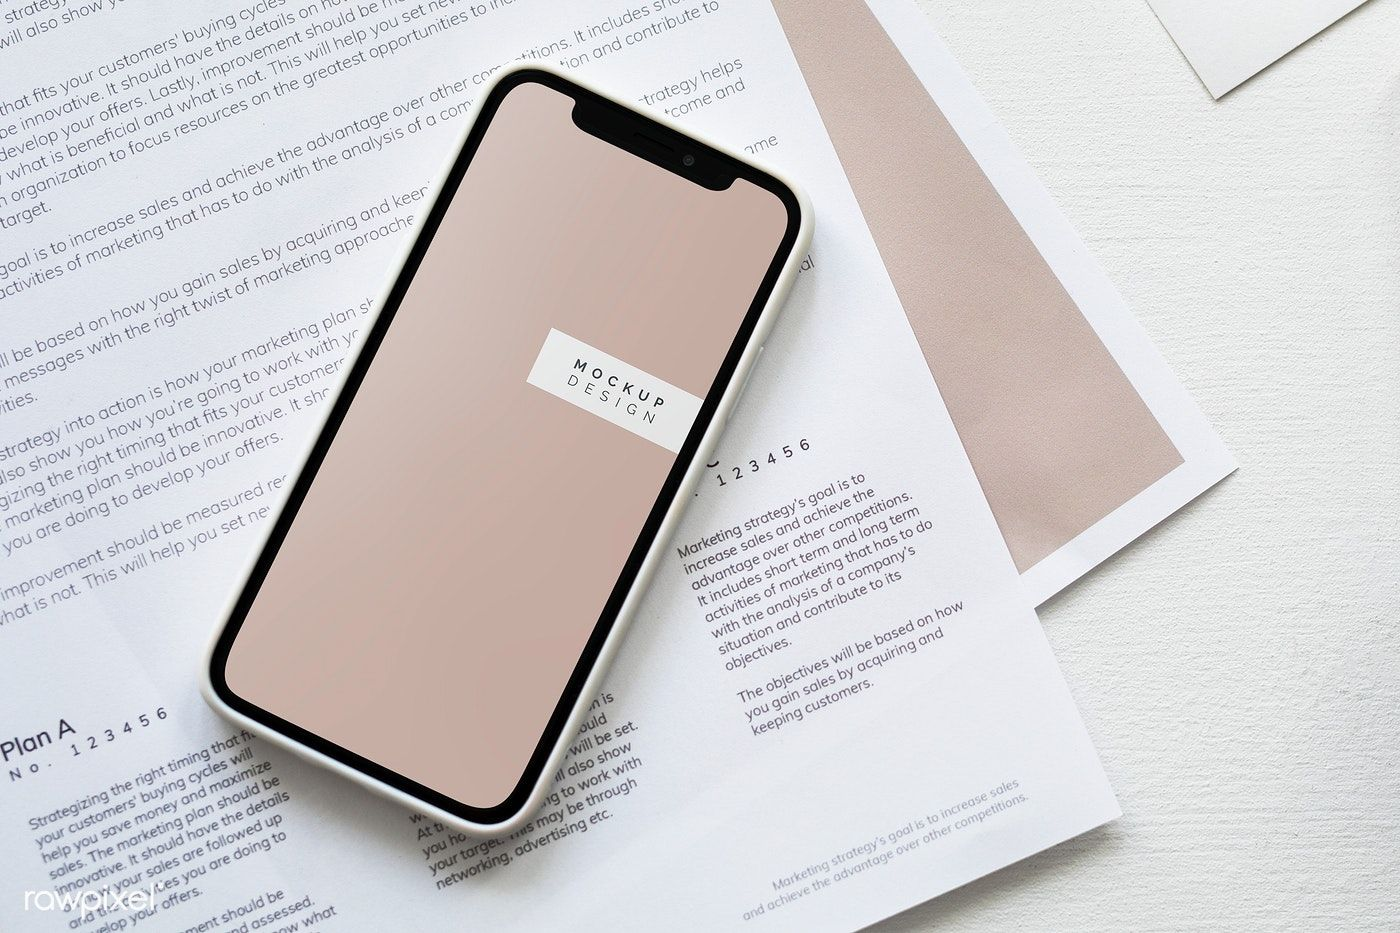 Download premium psd of Mobile phone mockup on a paper